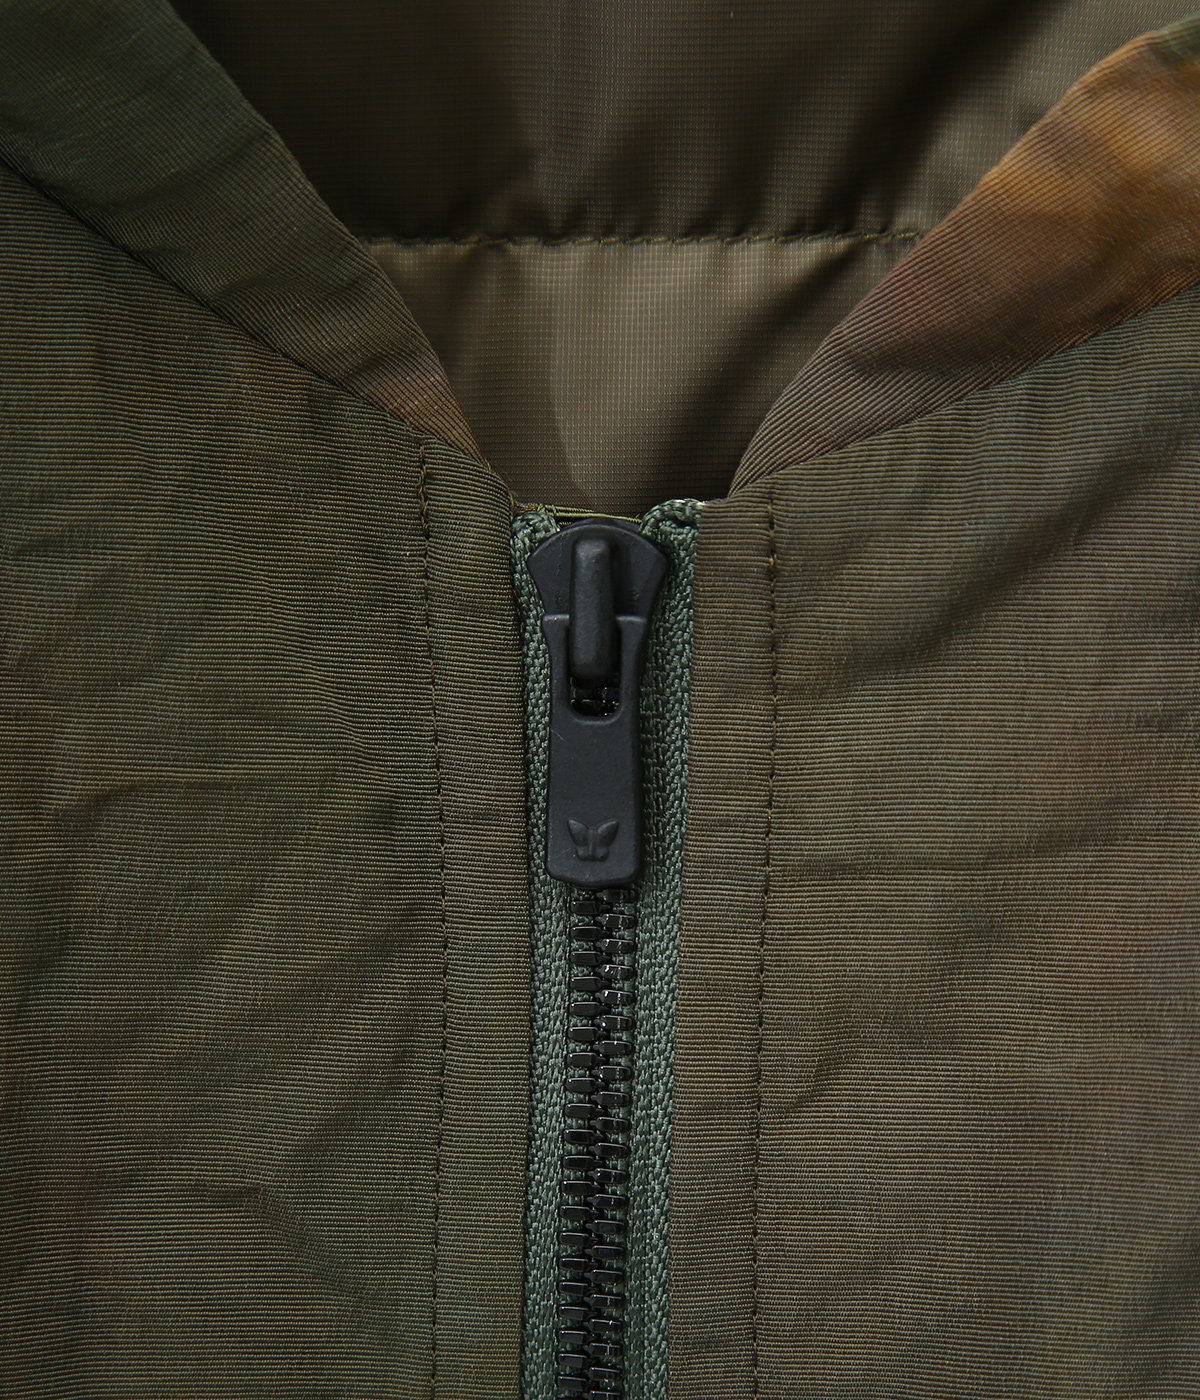 Stand Collar Down Sur Coat - Nylon Tussore / Uneven Dye